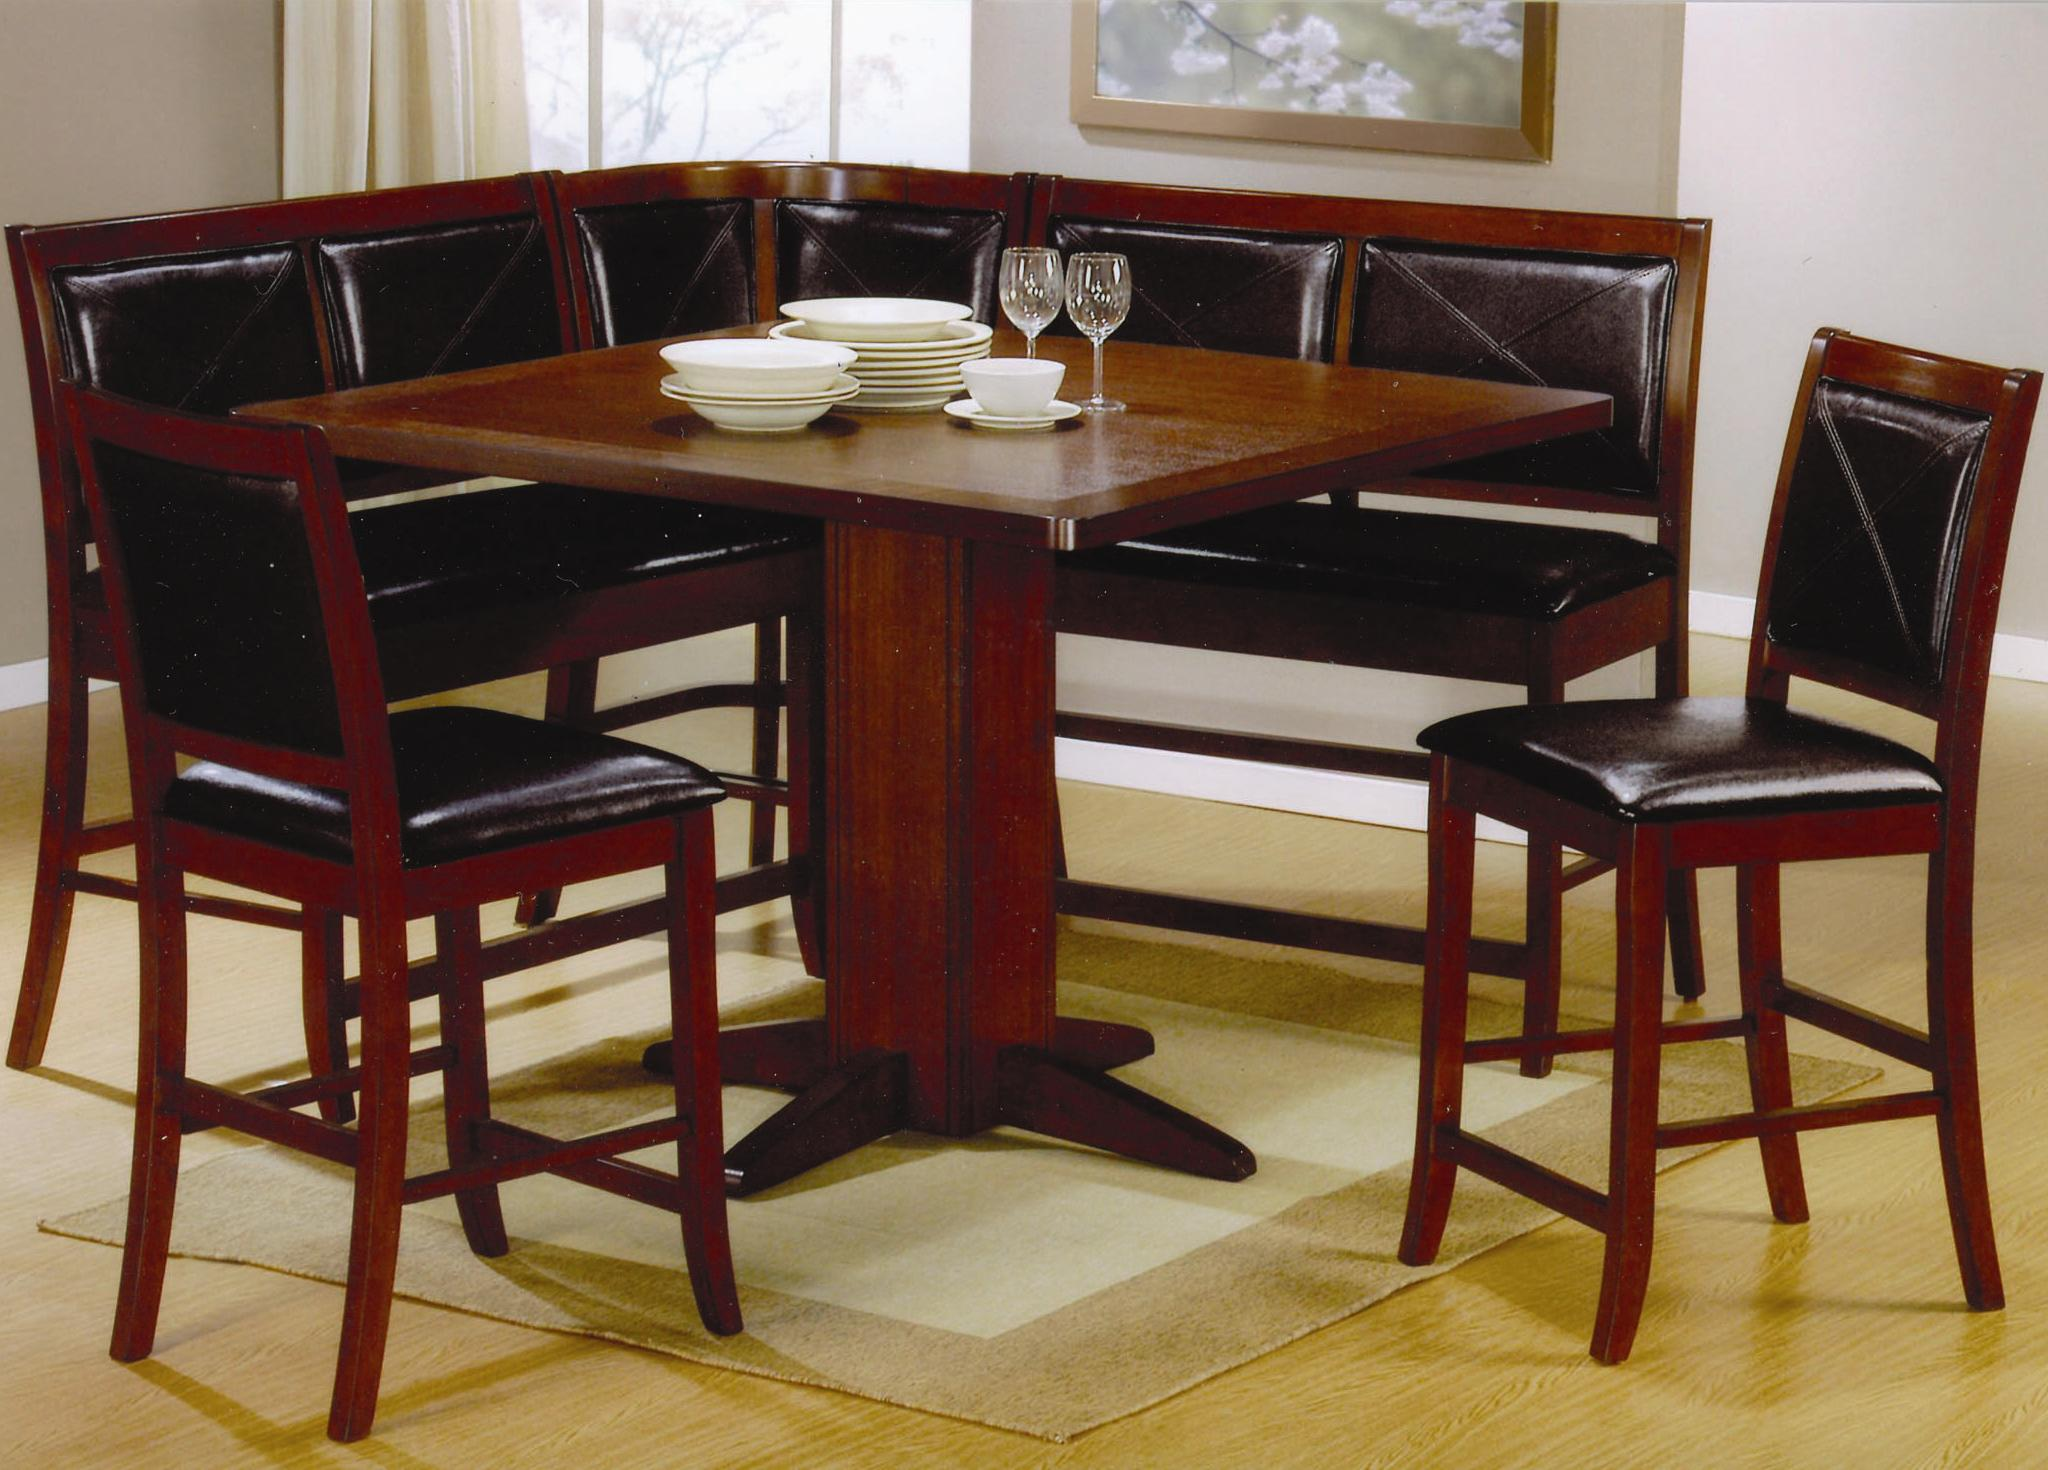 Kitchen Pub Table And Chairs Kitchen Table And Chairs Bar Height Best Kitchen Ideas 2017